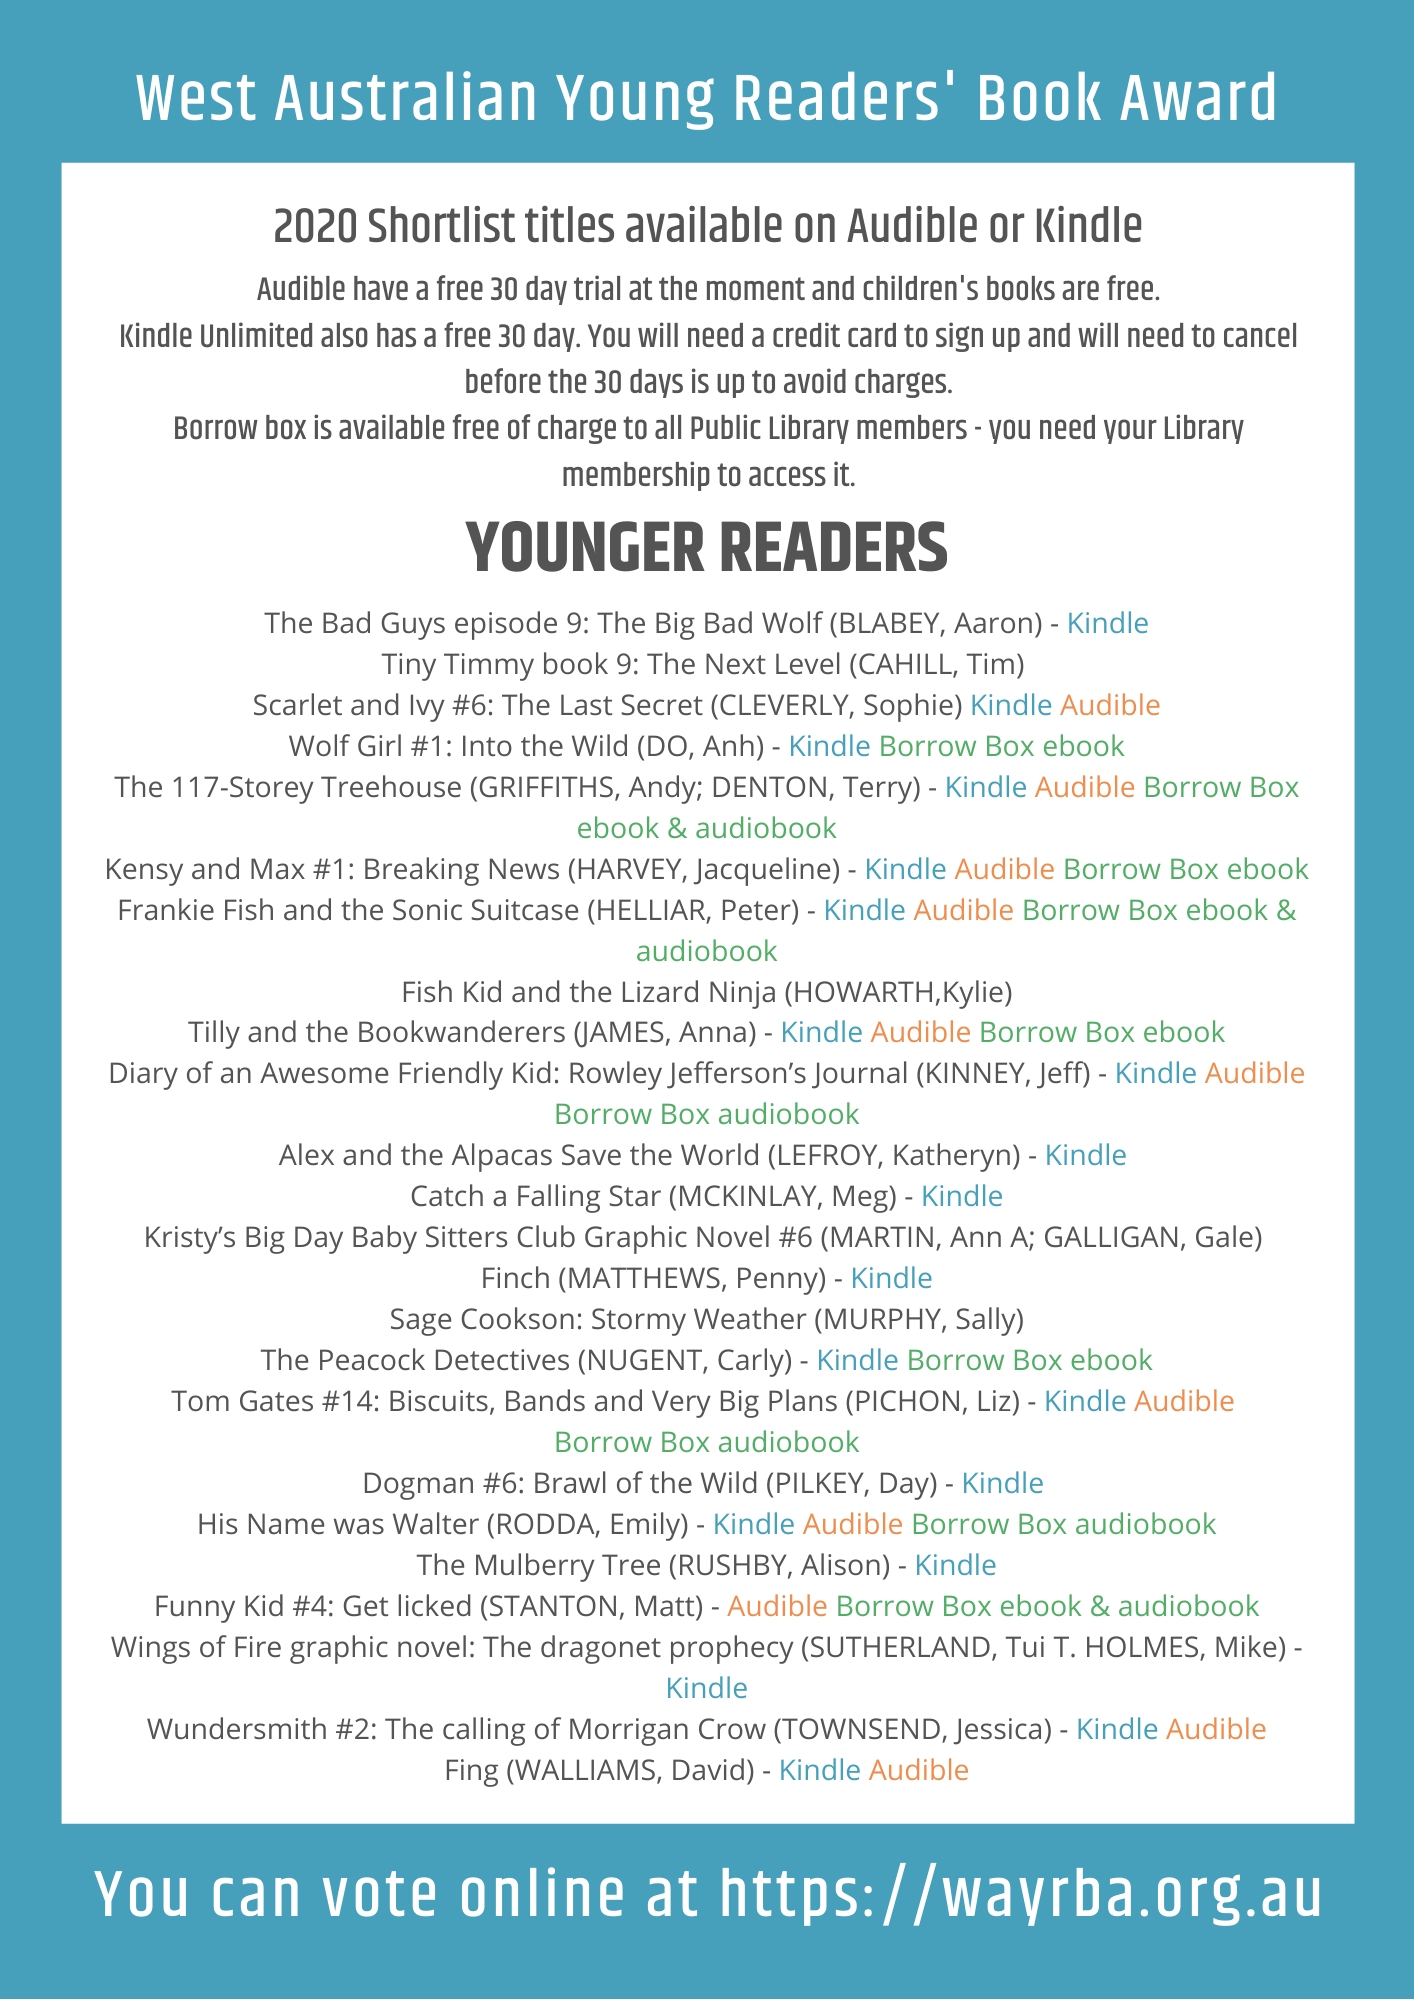 WAYRBA Digital versions of Younger Readers Shortlist